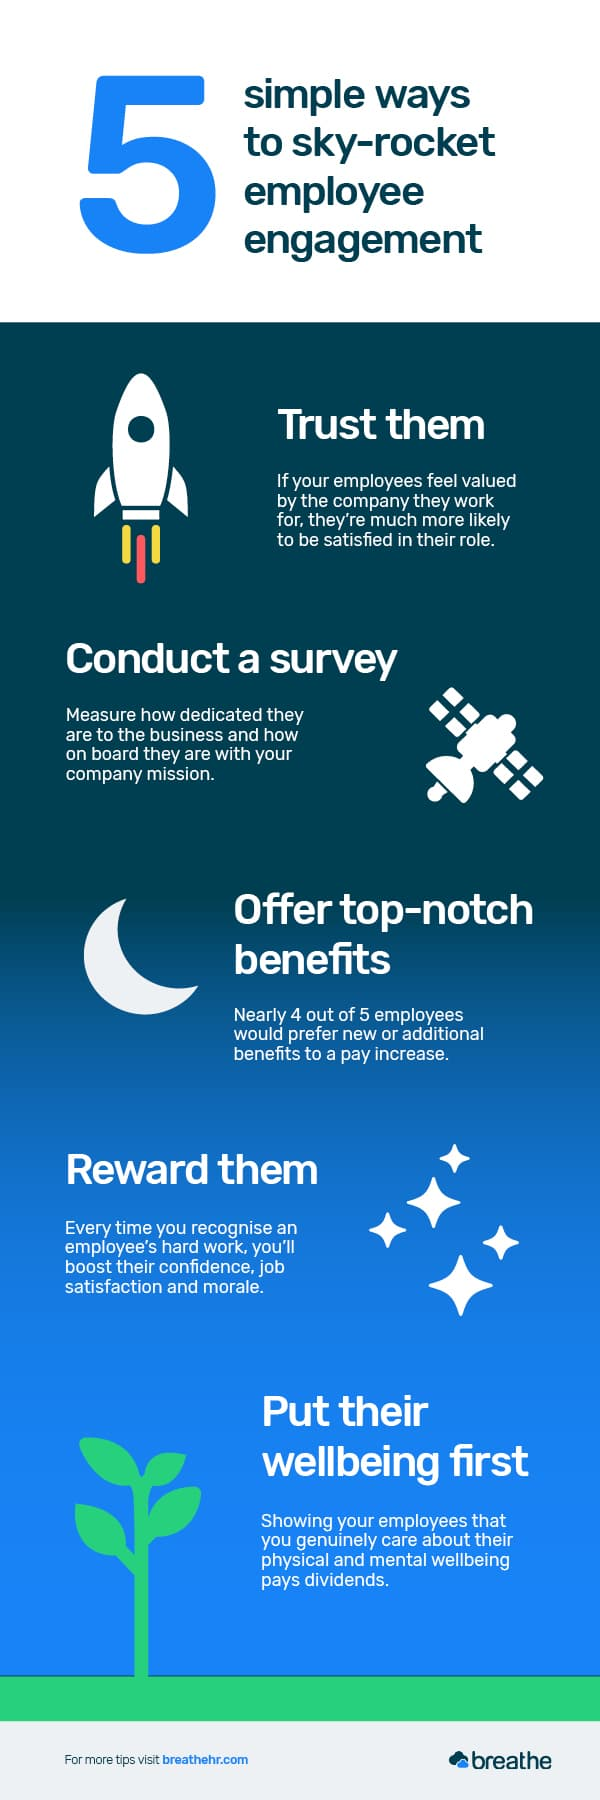 5 simple ways to sky-rocket employee engagement Infographic | Breathe